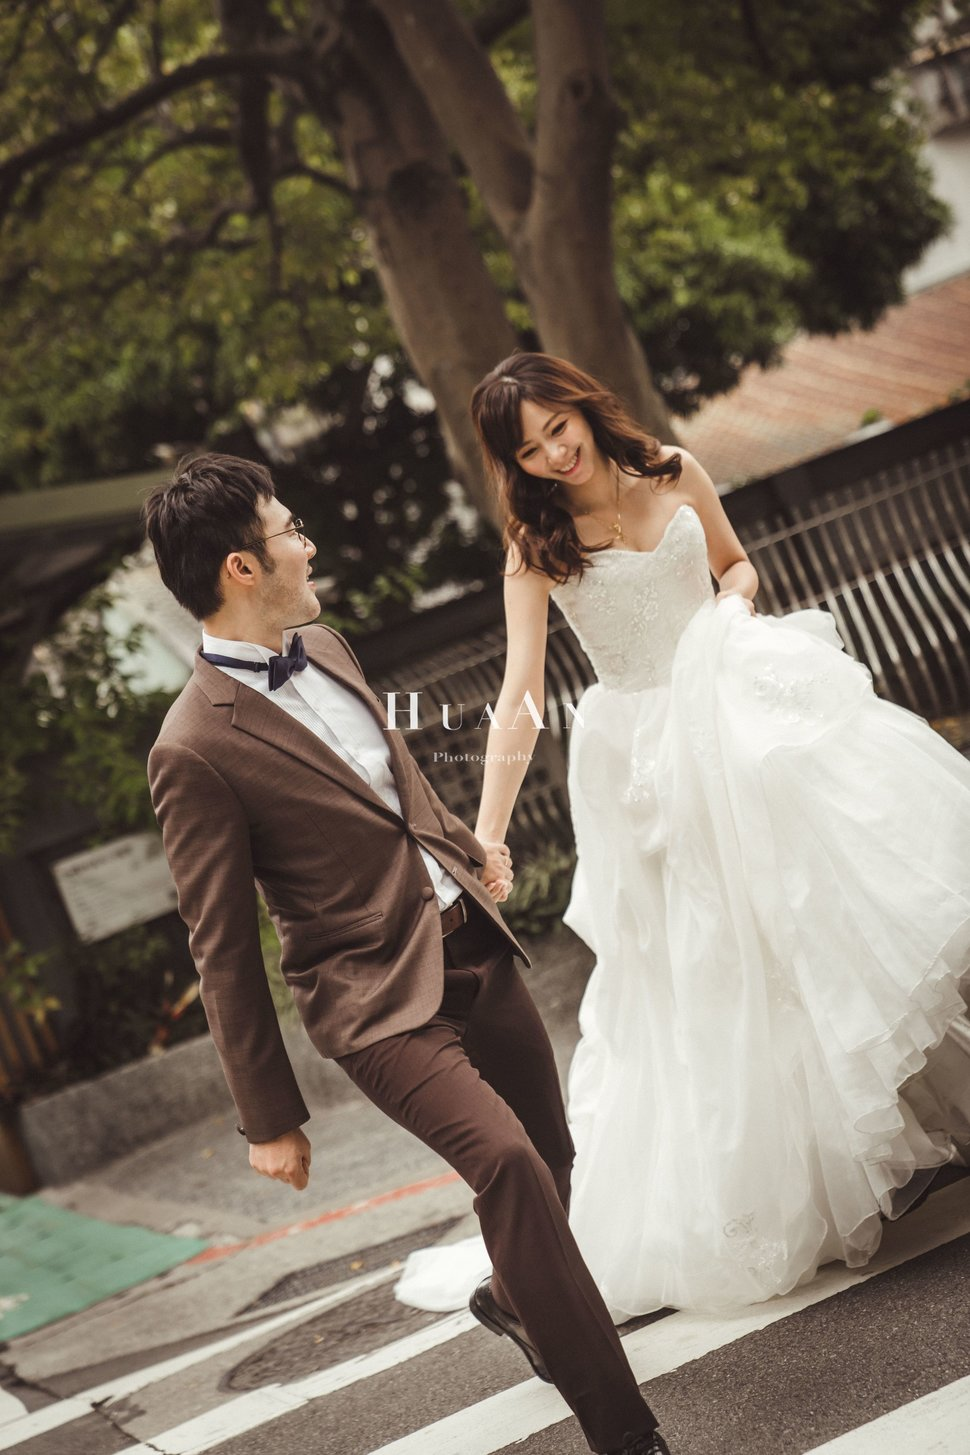 HUA00877 - Huaan Photography《結婚吧》